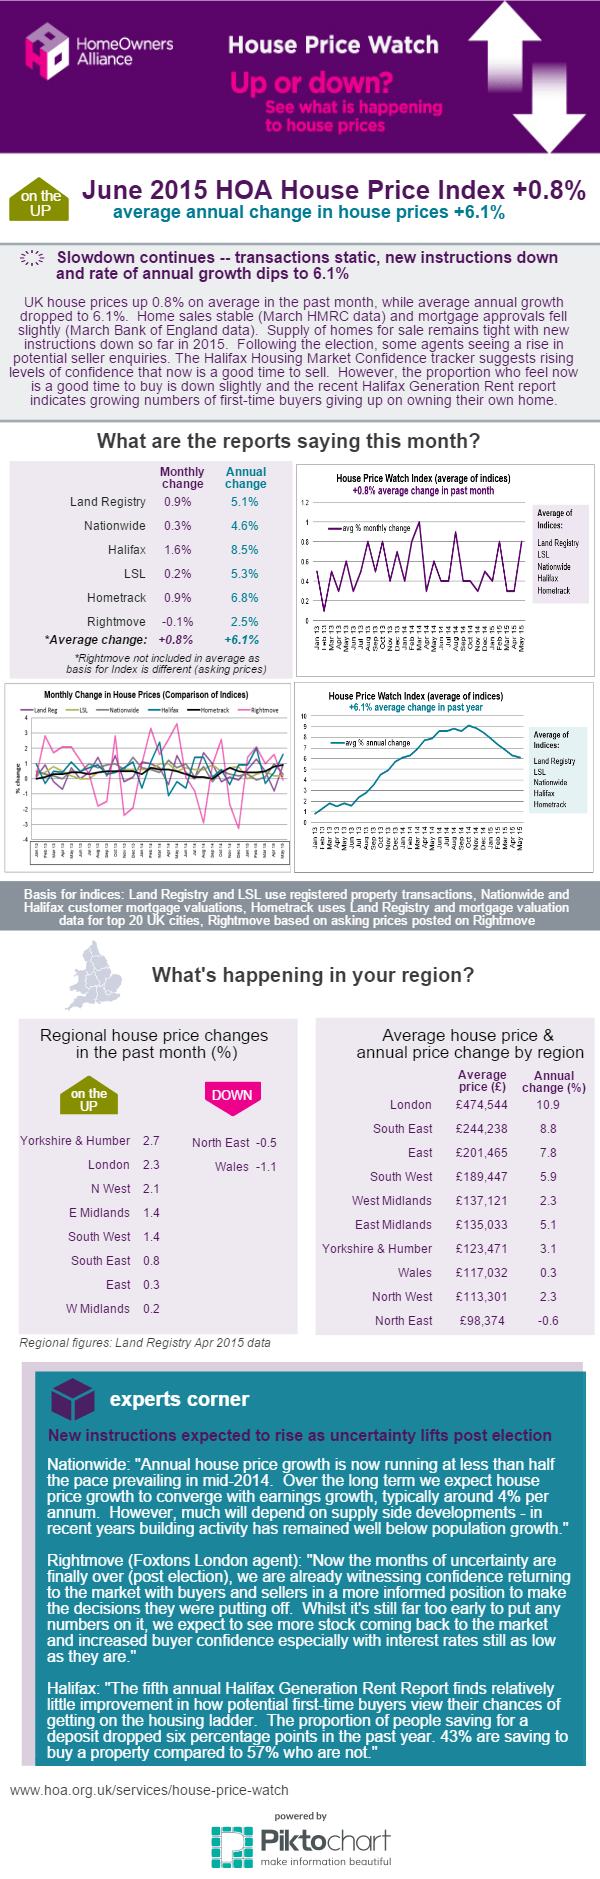 June 2015 House Price Watch Infographic